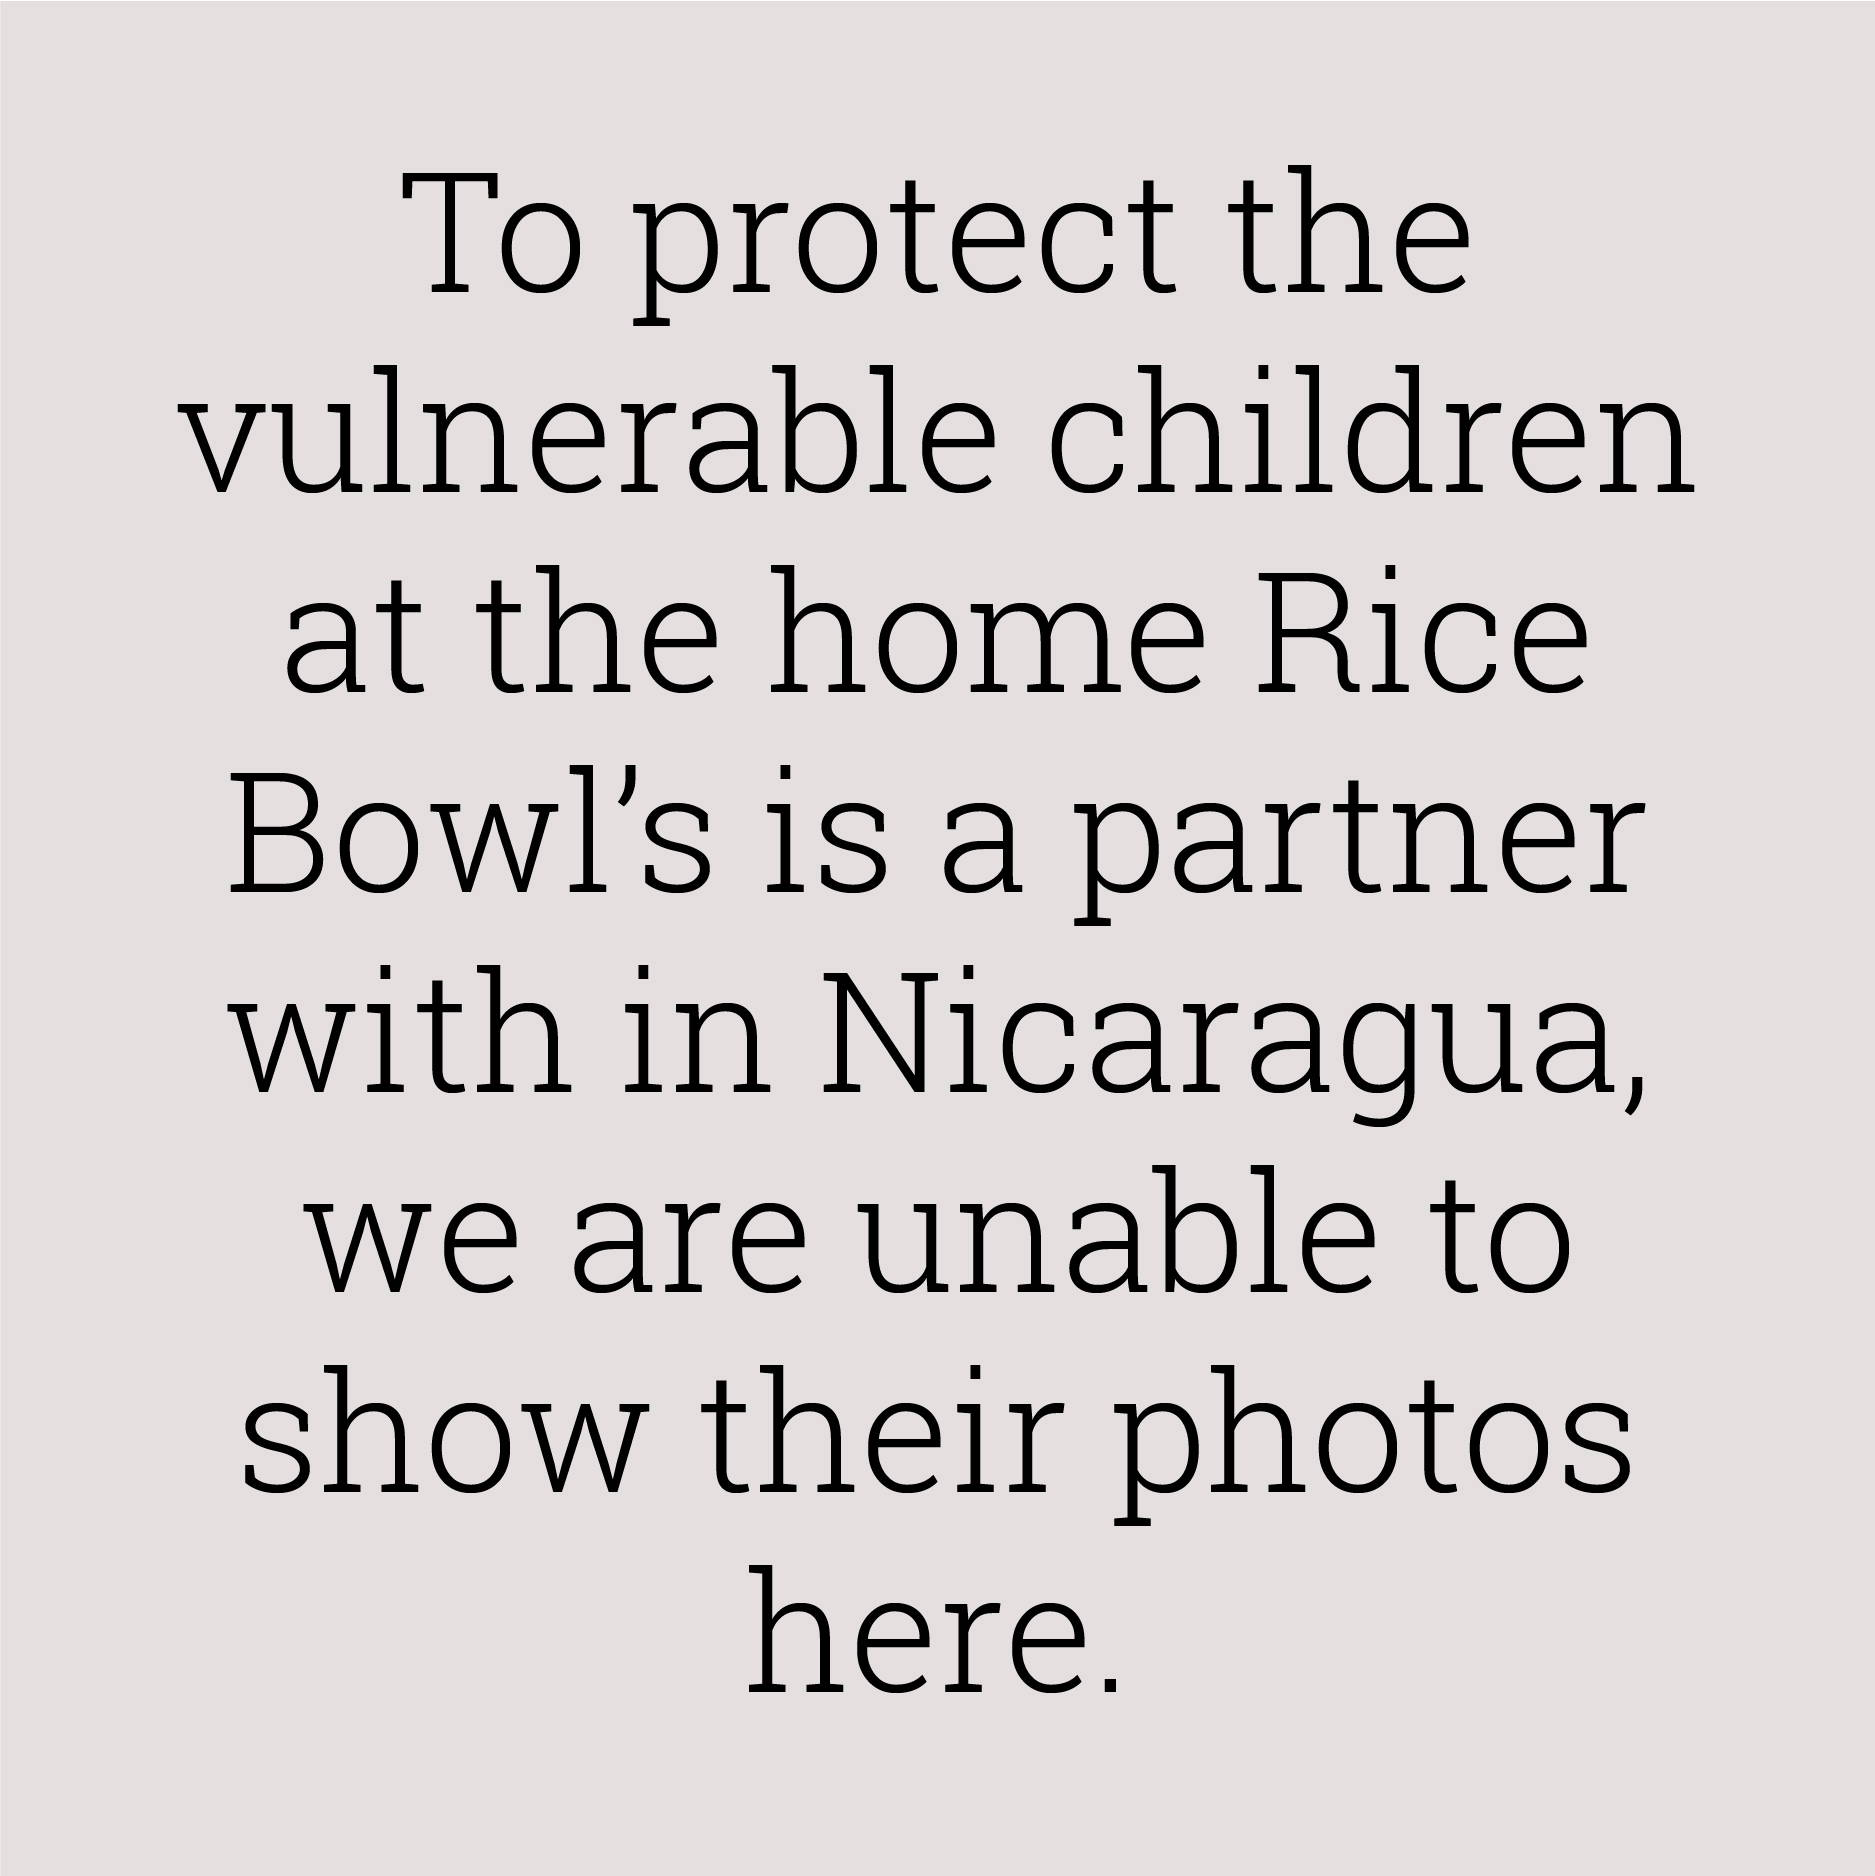 A disclaimer stating that Bridgewater and Rice Bowls legally can not show photos of the children supported in Nicaragua